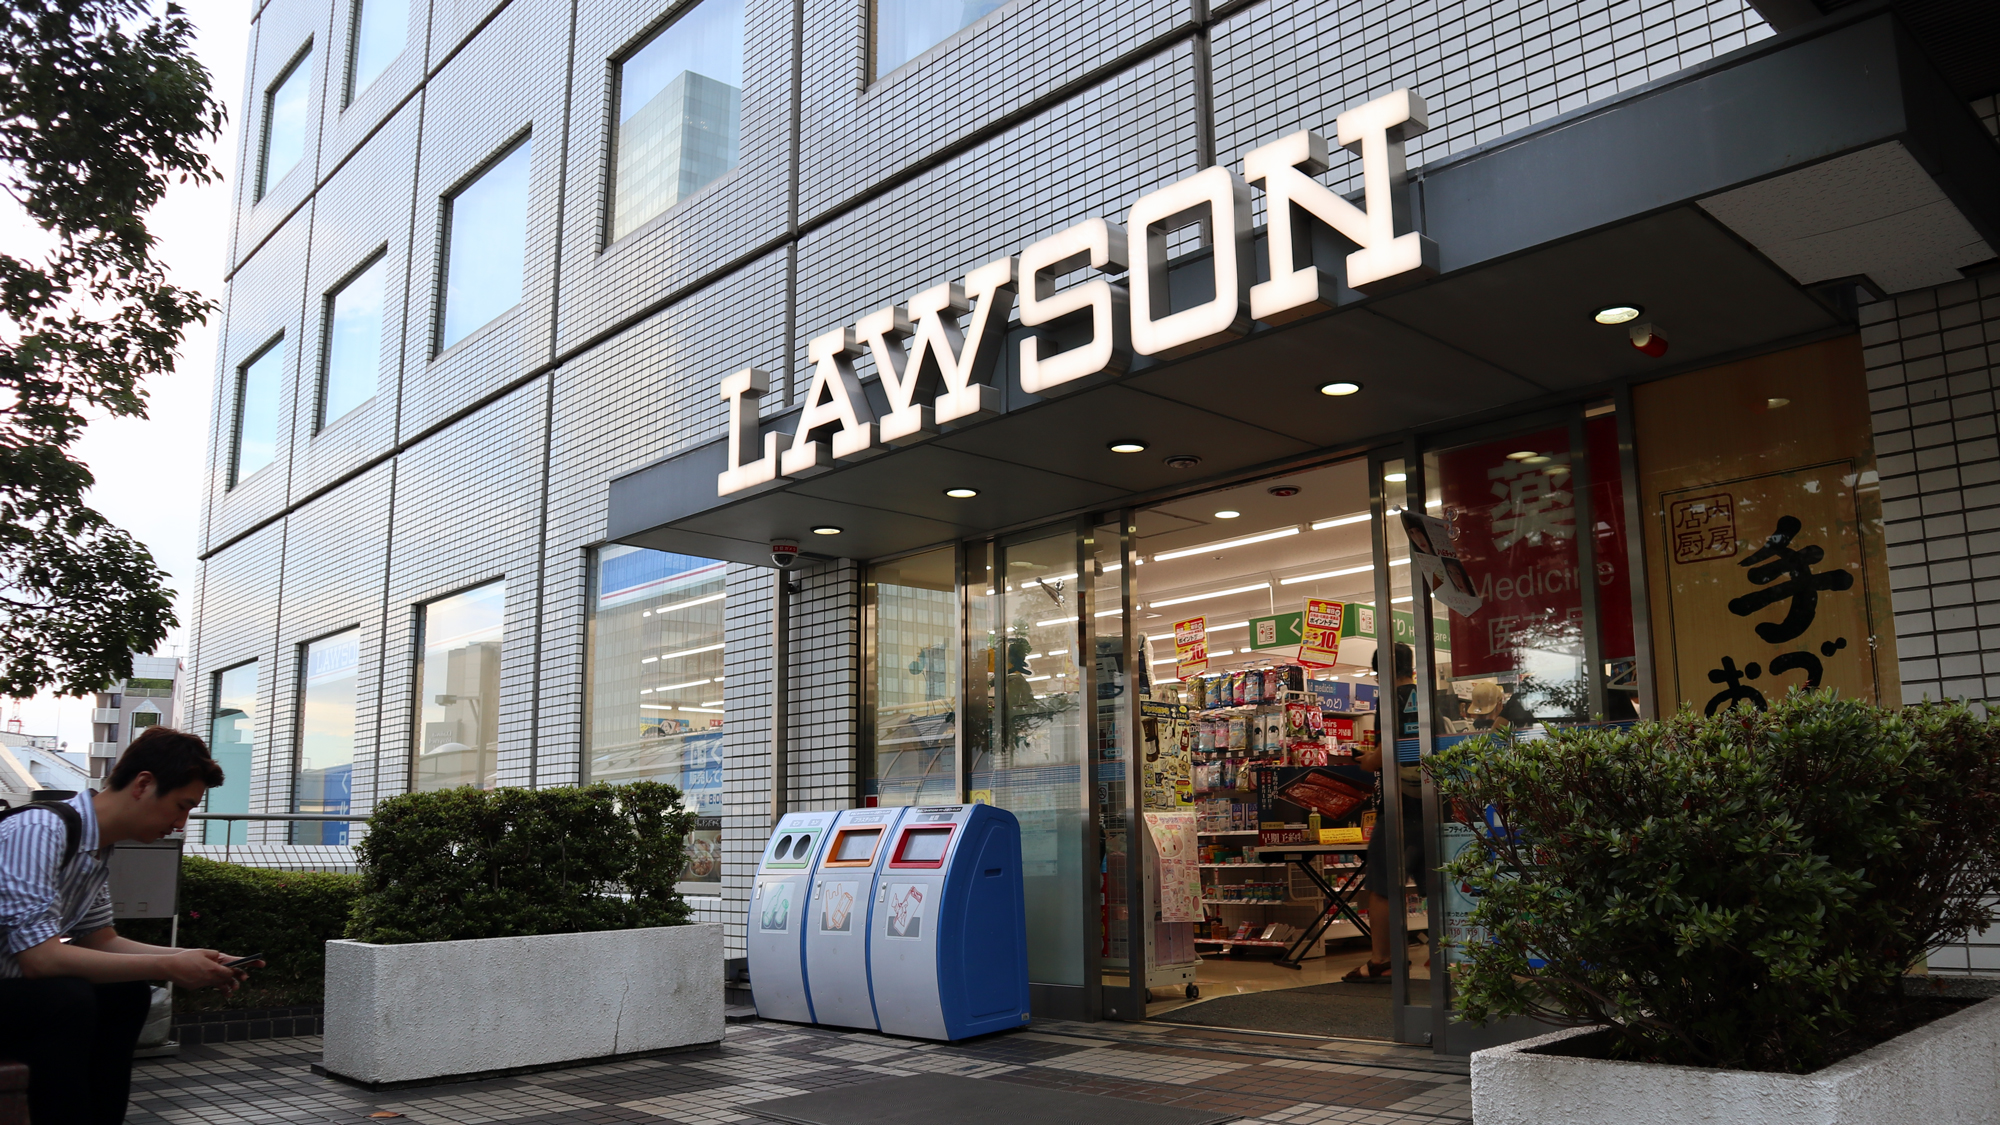 "A Lawson store near the company's HQ in Tokyo's Ōsaki neighborhood. The name ""Lawson"" appears across the awning in bright white letters, in the same old-timey font as the original Lawson store from Ohio."